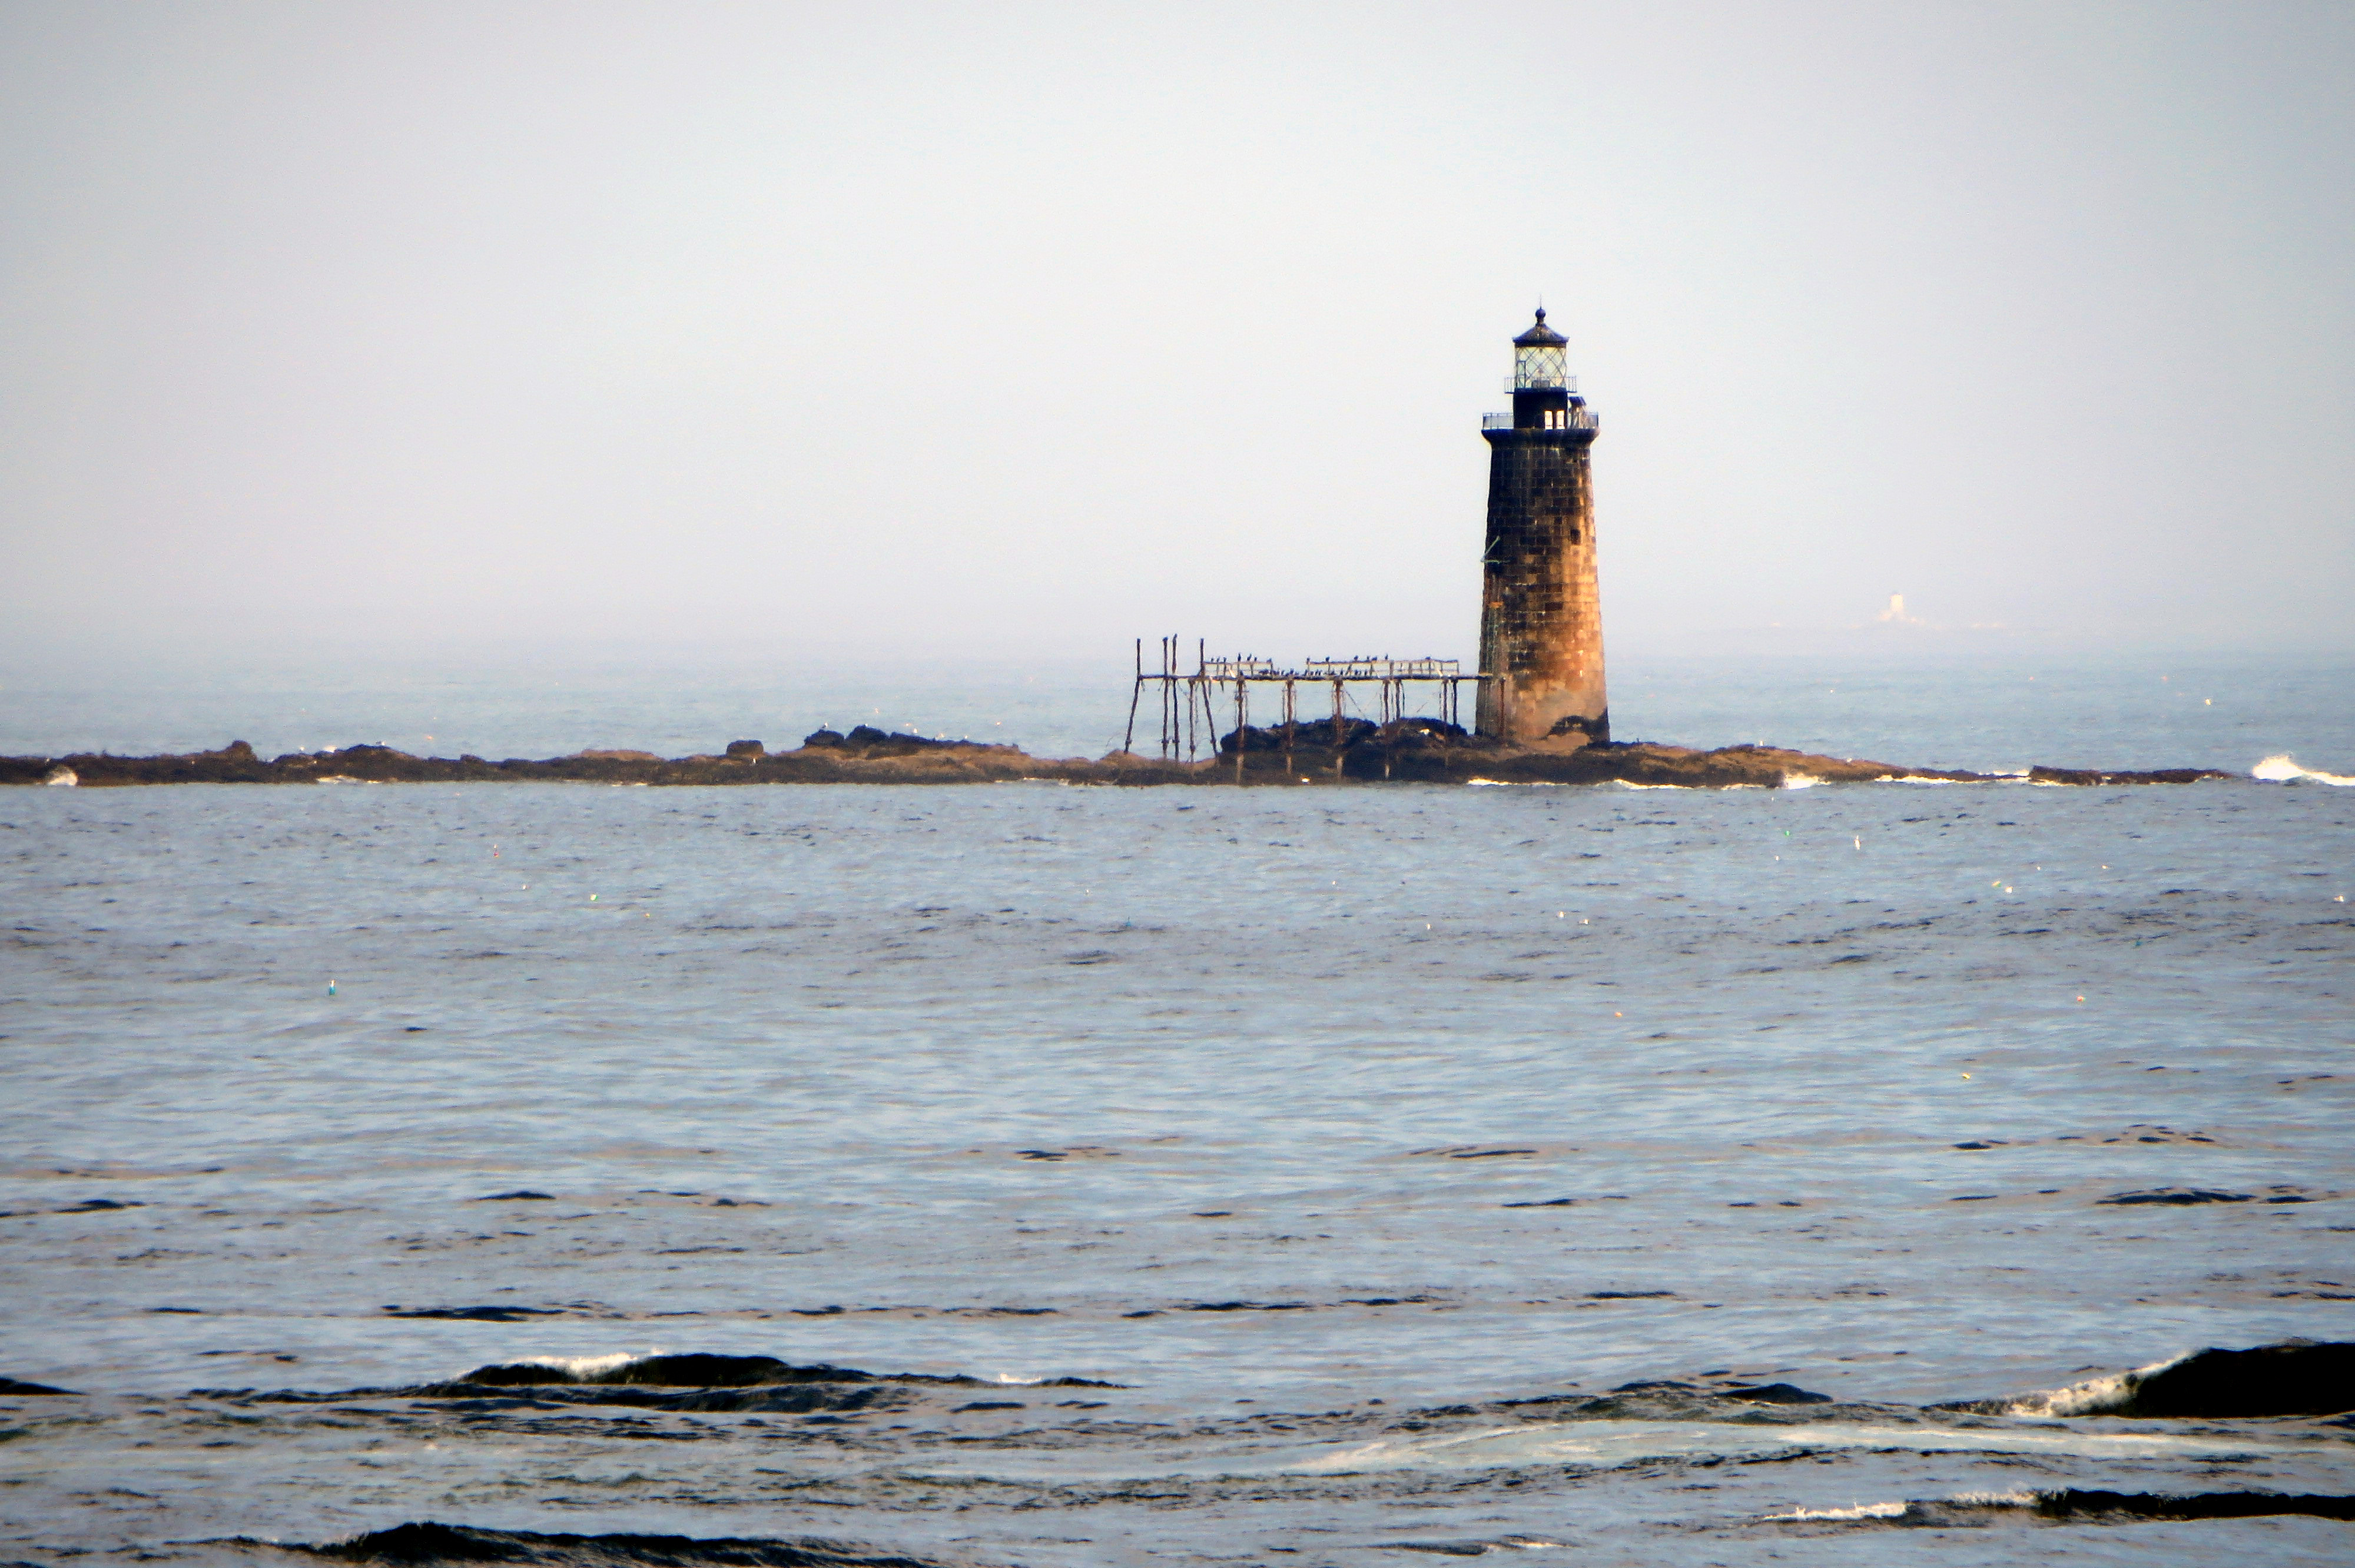 Old lighthouse - fort williams park - cape elizabeth, maine photo